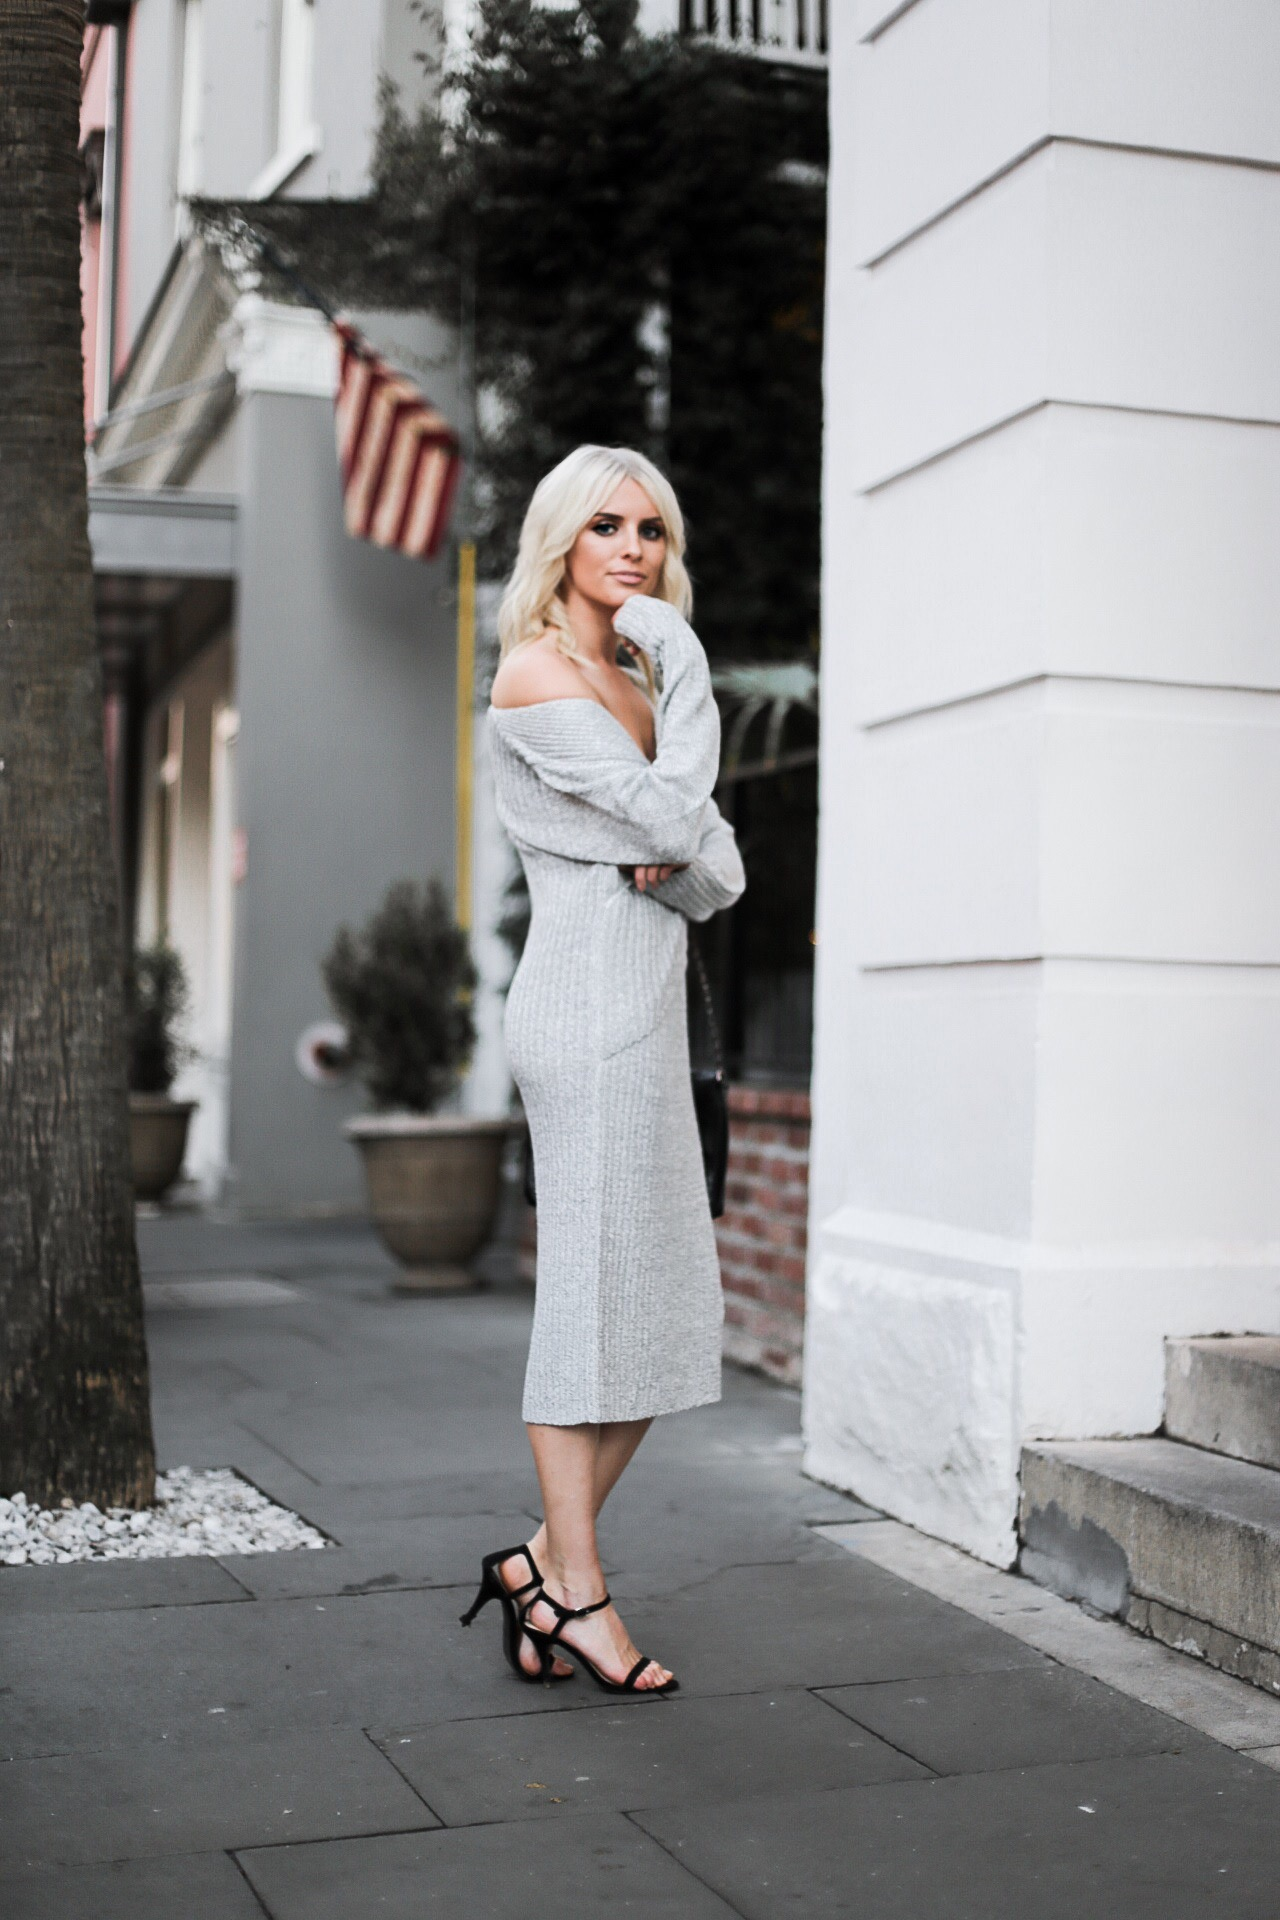 Make Me Move cmeo collective sweater ribbed knit dress v neck grey Shopbop Revolve Nordstrom blogger street style winter 2017 // Charleston Fashion Blogger Dannon Like The Yogurt